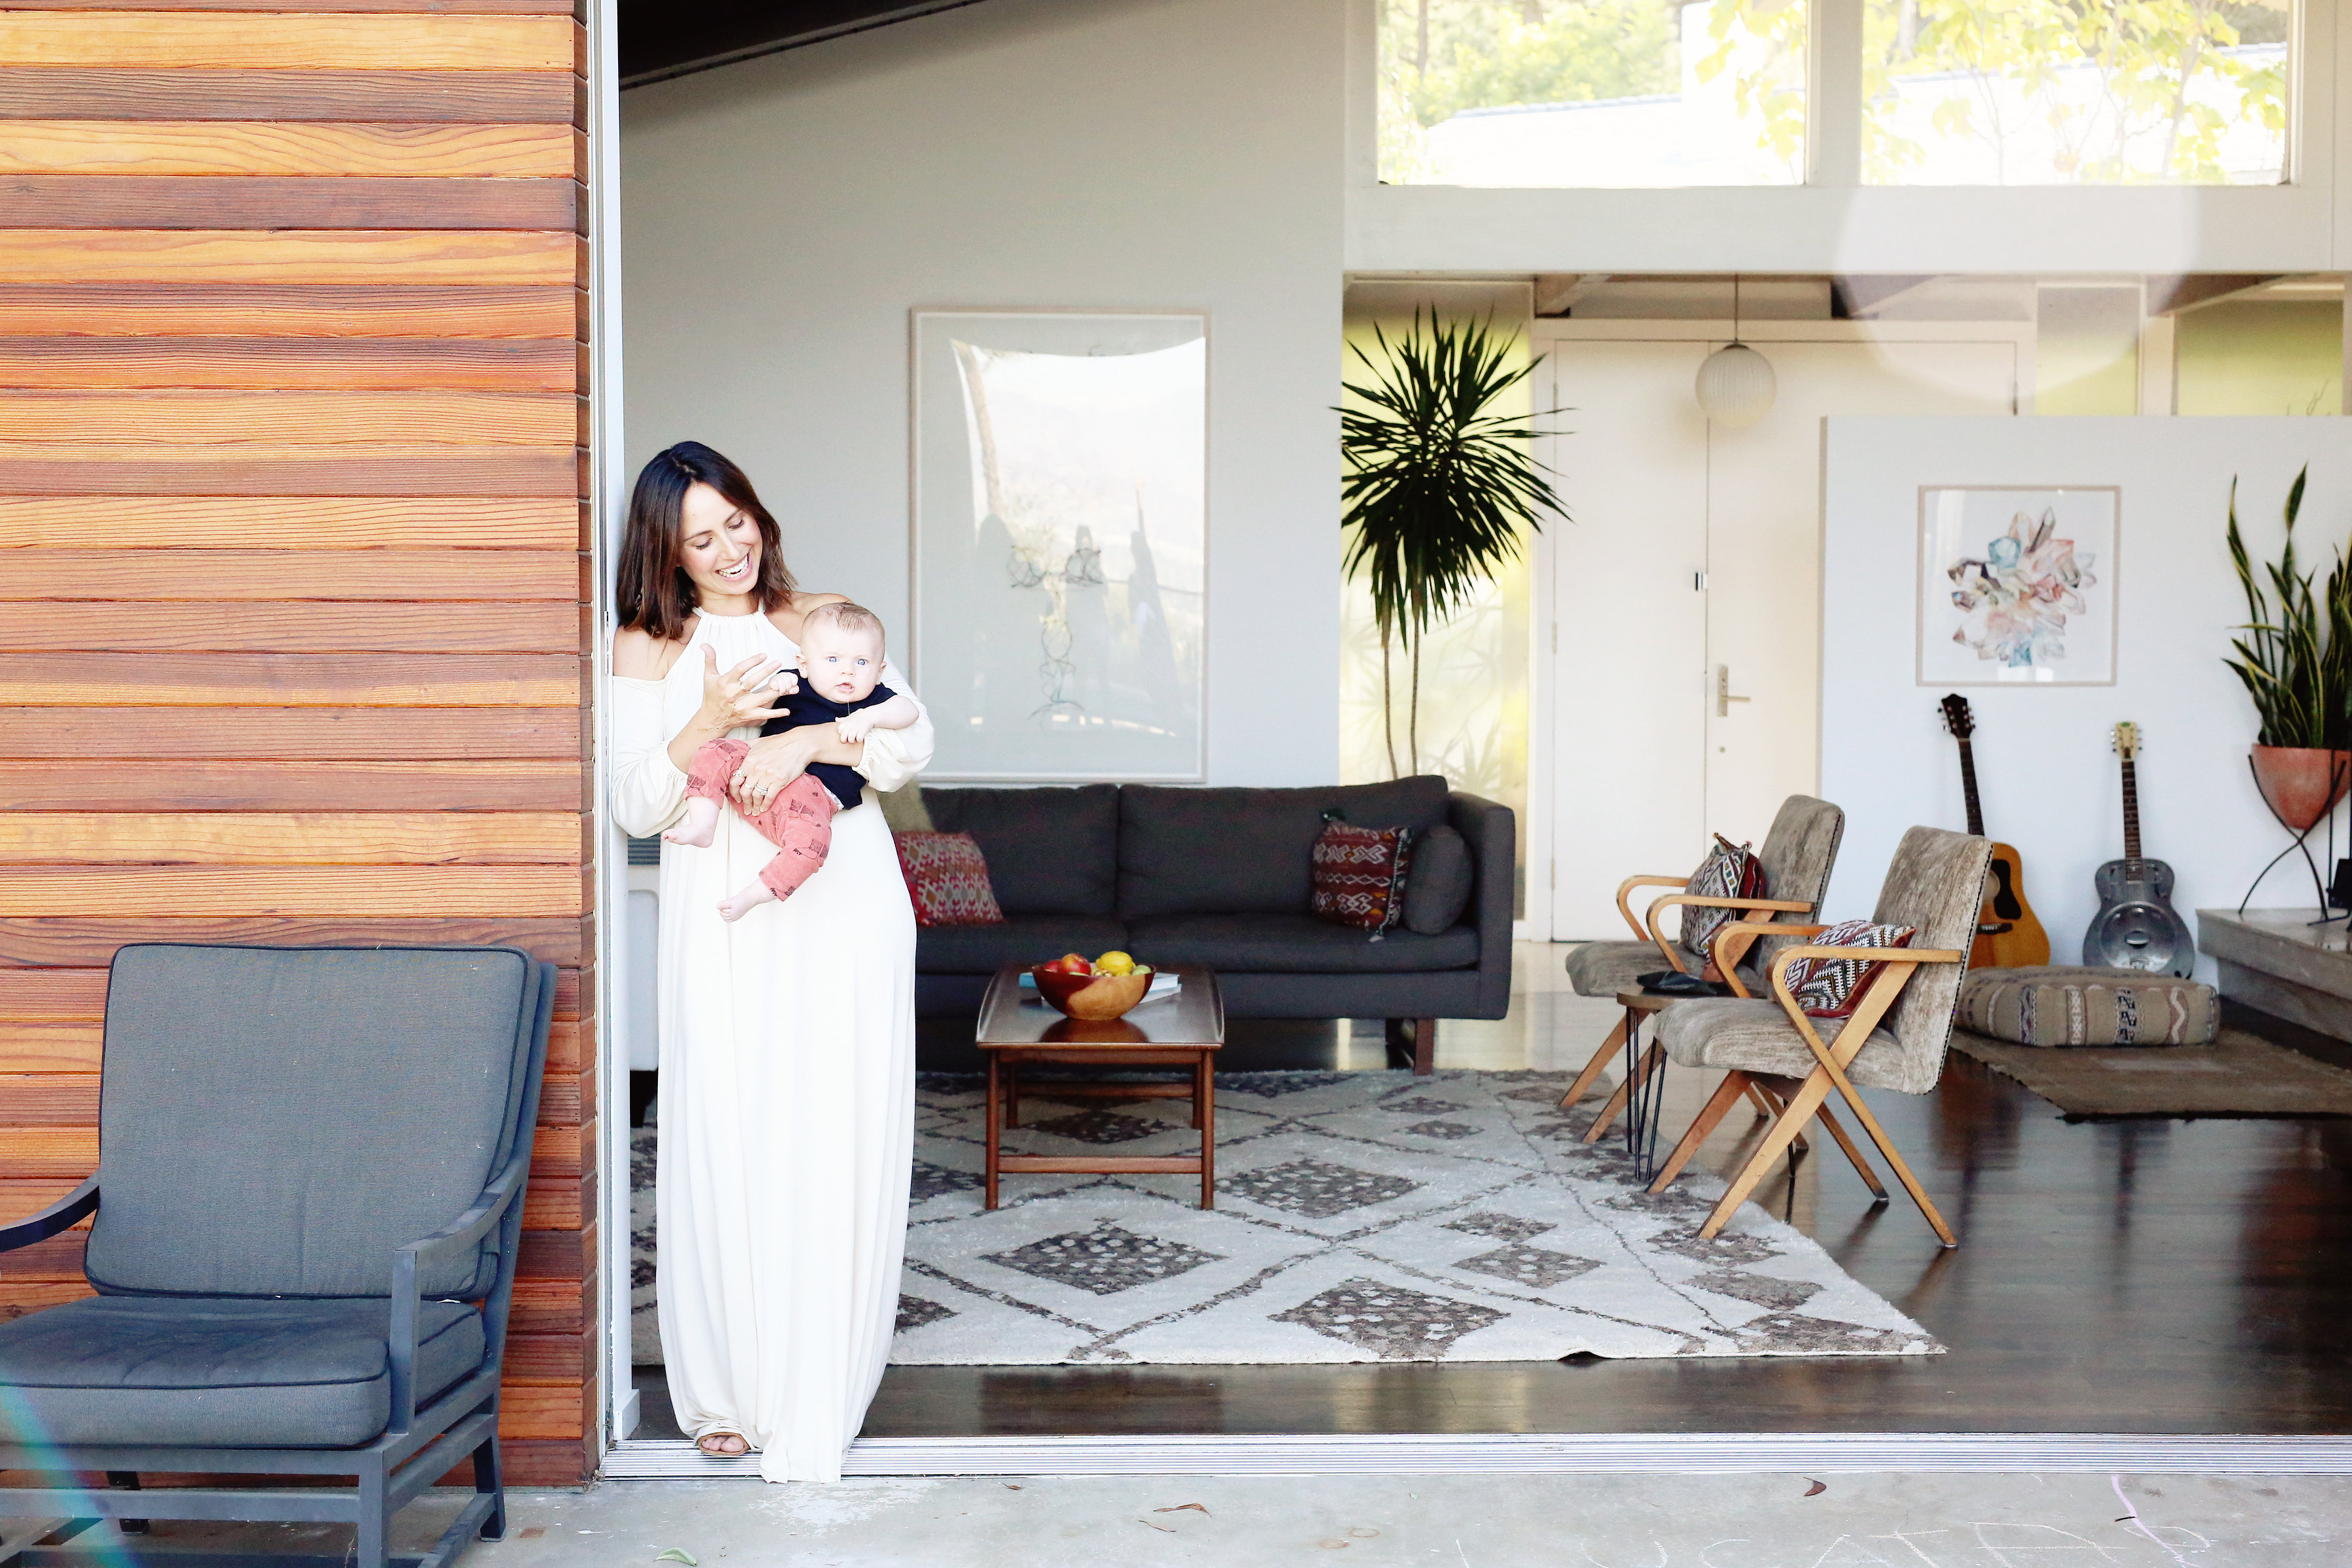 rachel pally, rachel pally home, mini magazine, love and lemonade, los angeles lifestyle photographer, lifestyle photography, los angeles family photographer, family photography, family photographer, nina lance, mid century modern decor, mid century modern home design